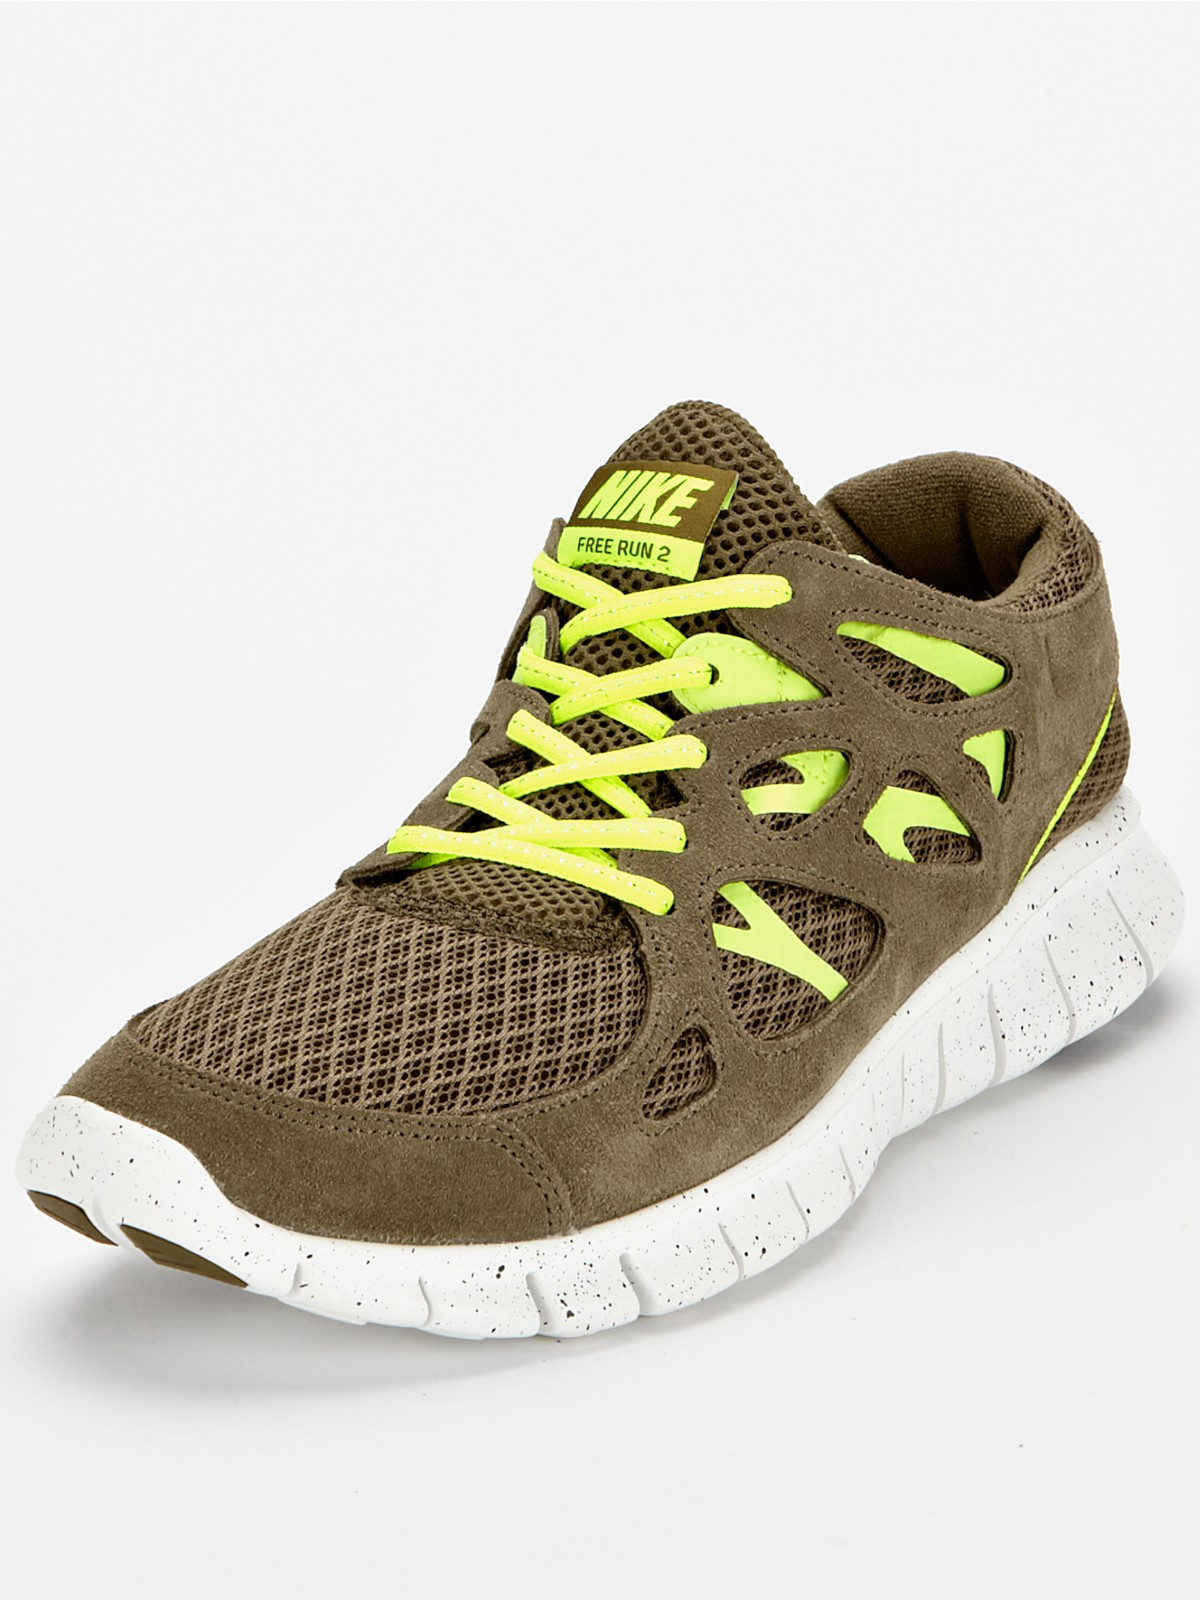 nike nike free run 2 mens trainers in khaki for men lyst. Black Bedroom Furniture Sets. Home Design Ideas